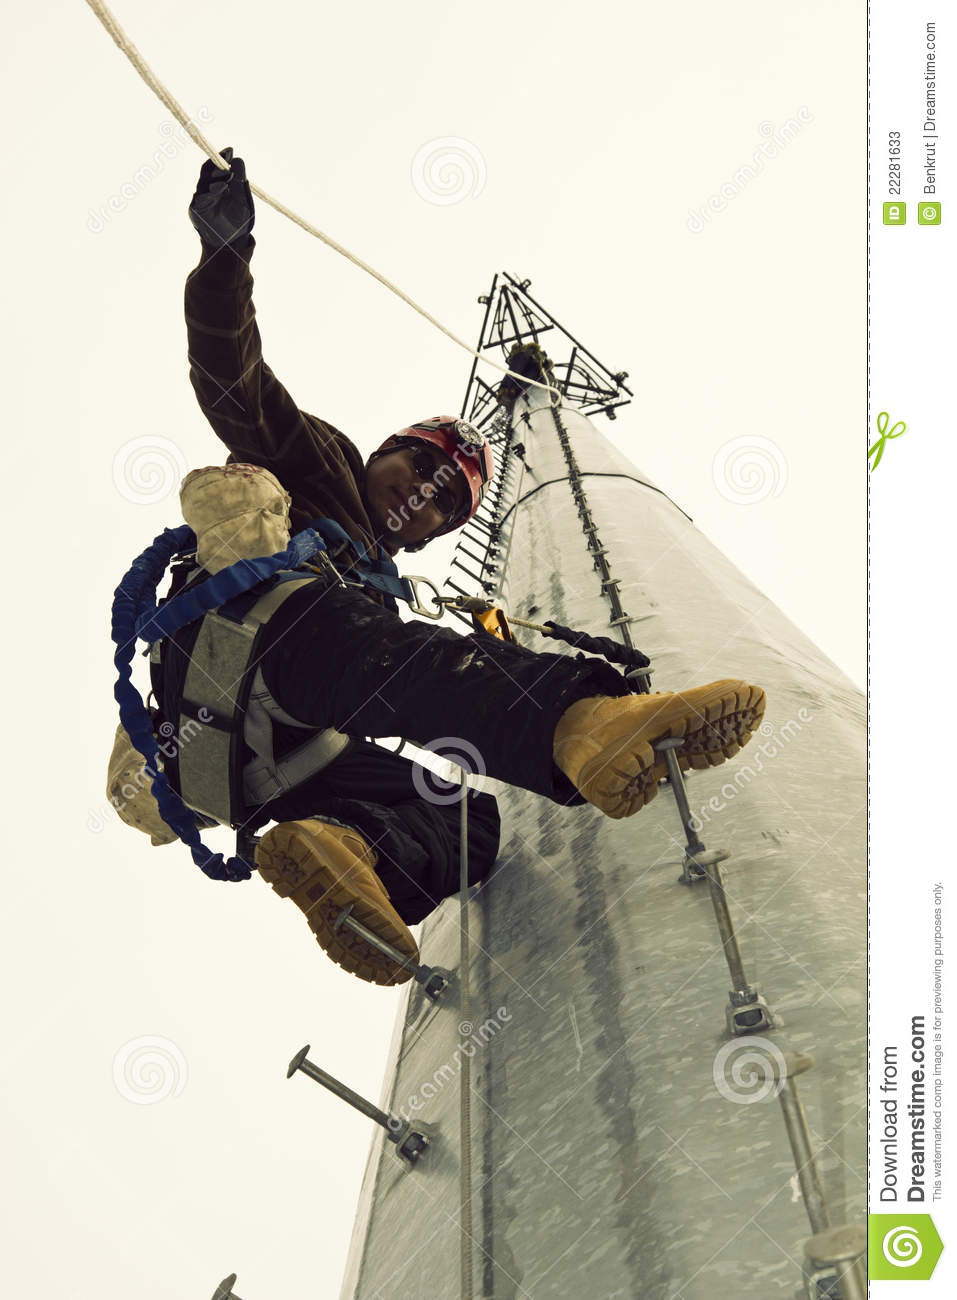 Cell Tower Climber Stock Image Image Of Tower Professional 22281633